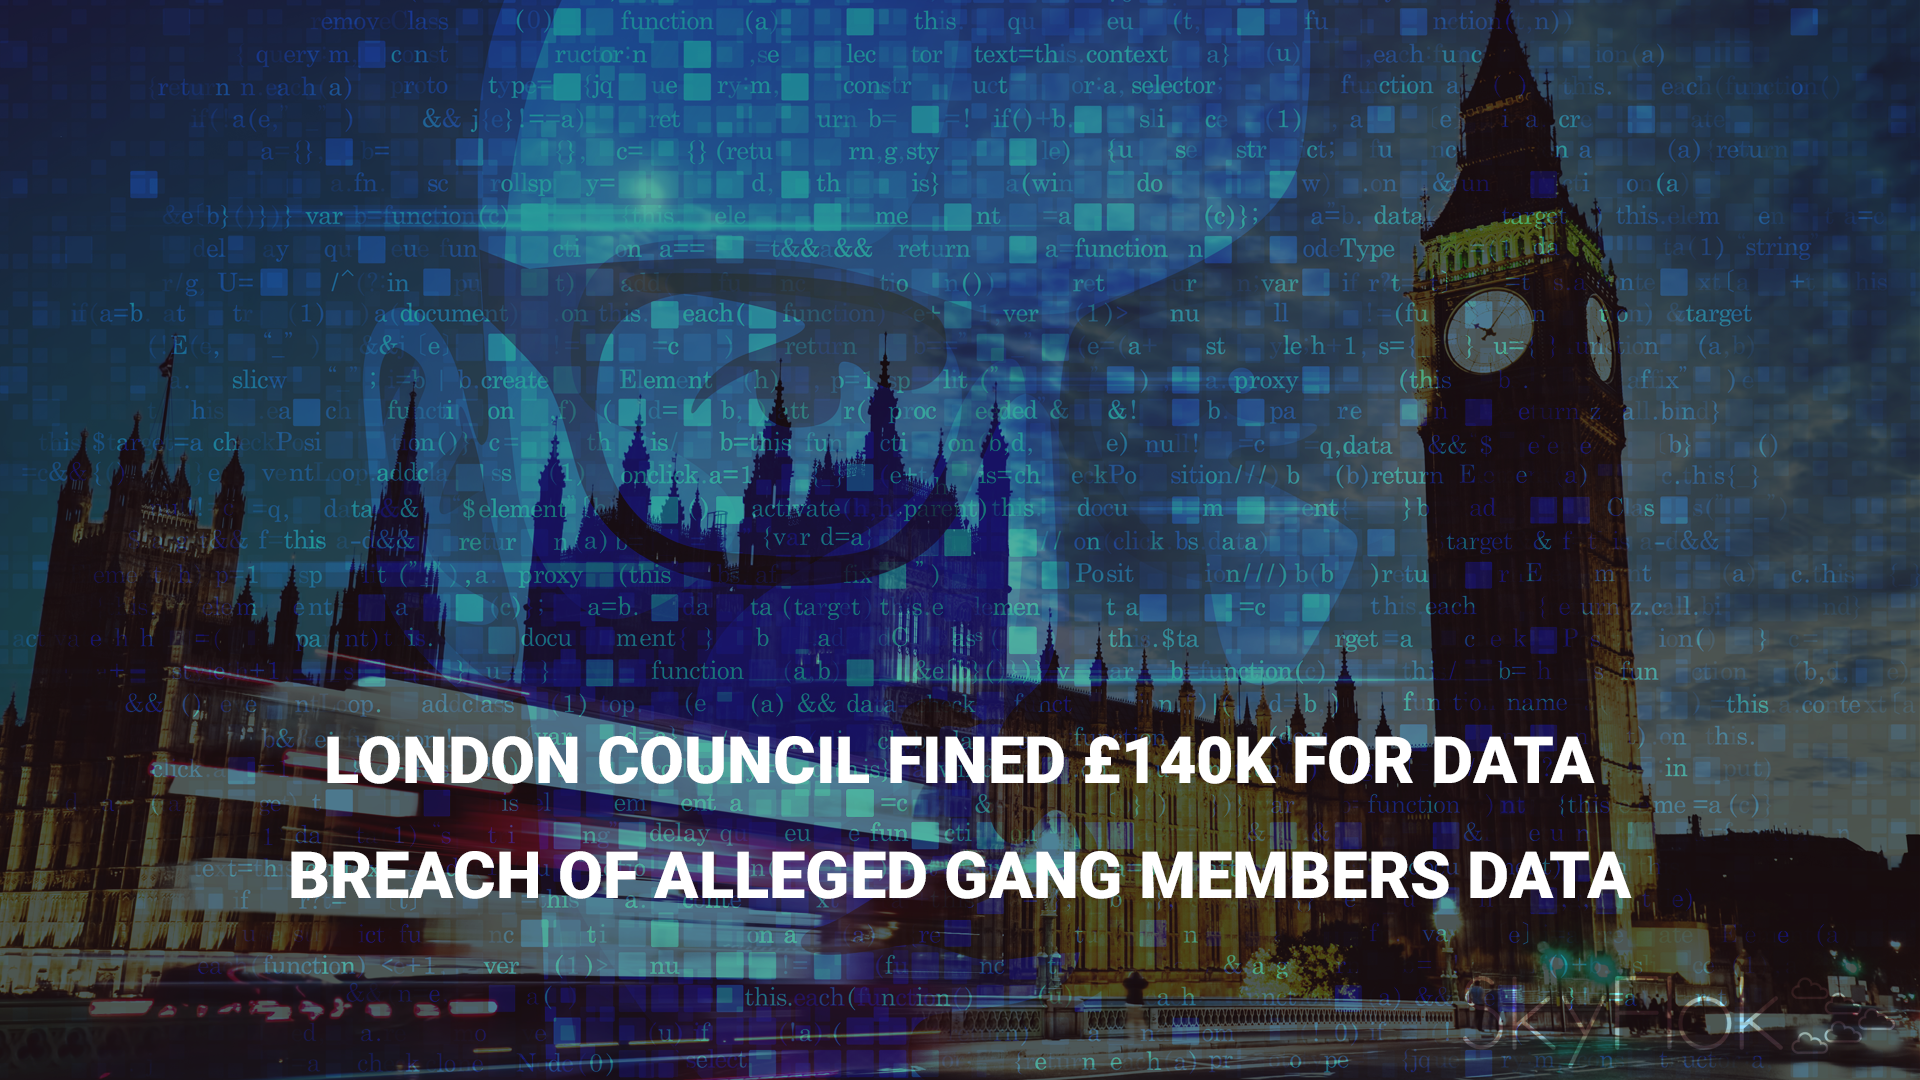 London council fined £140k for data breach of alleged gang members data